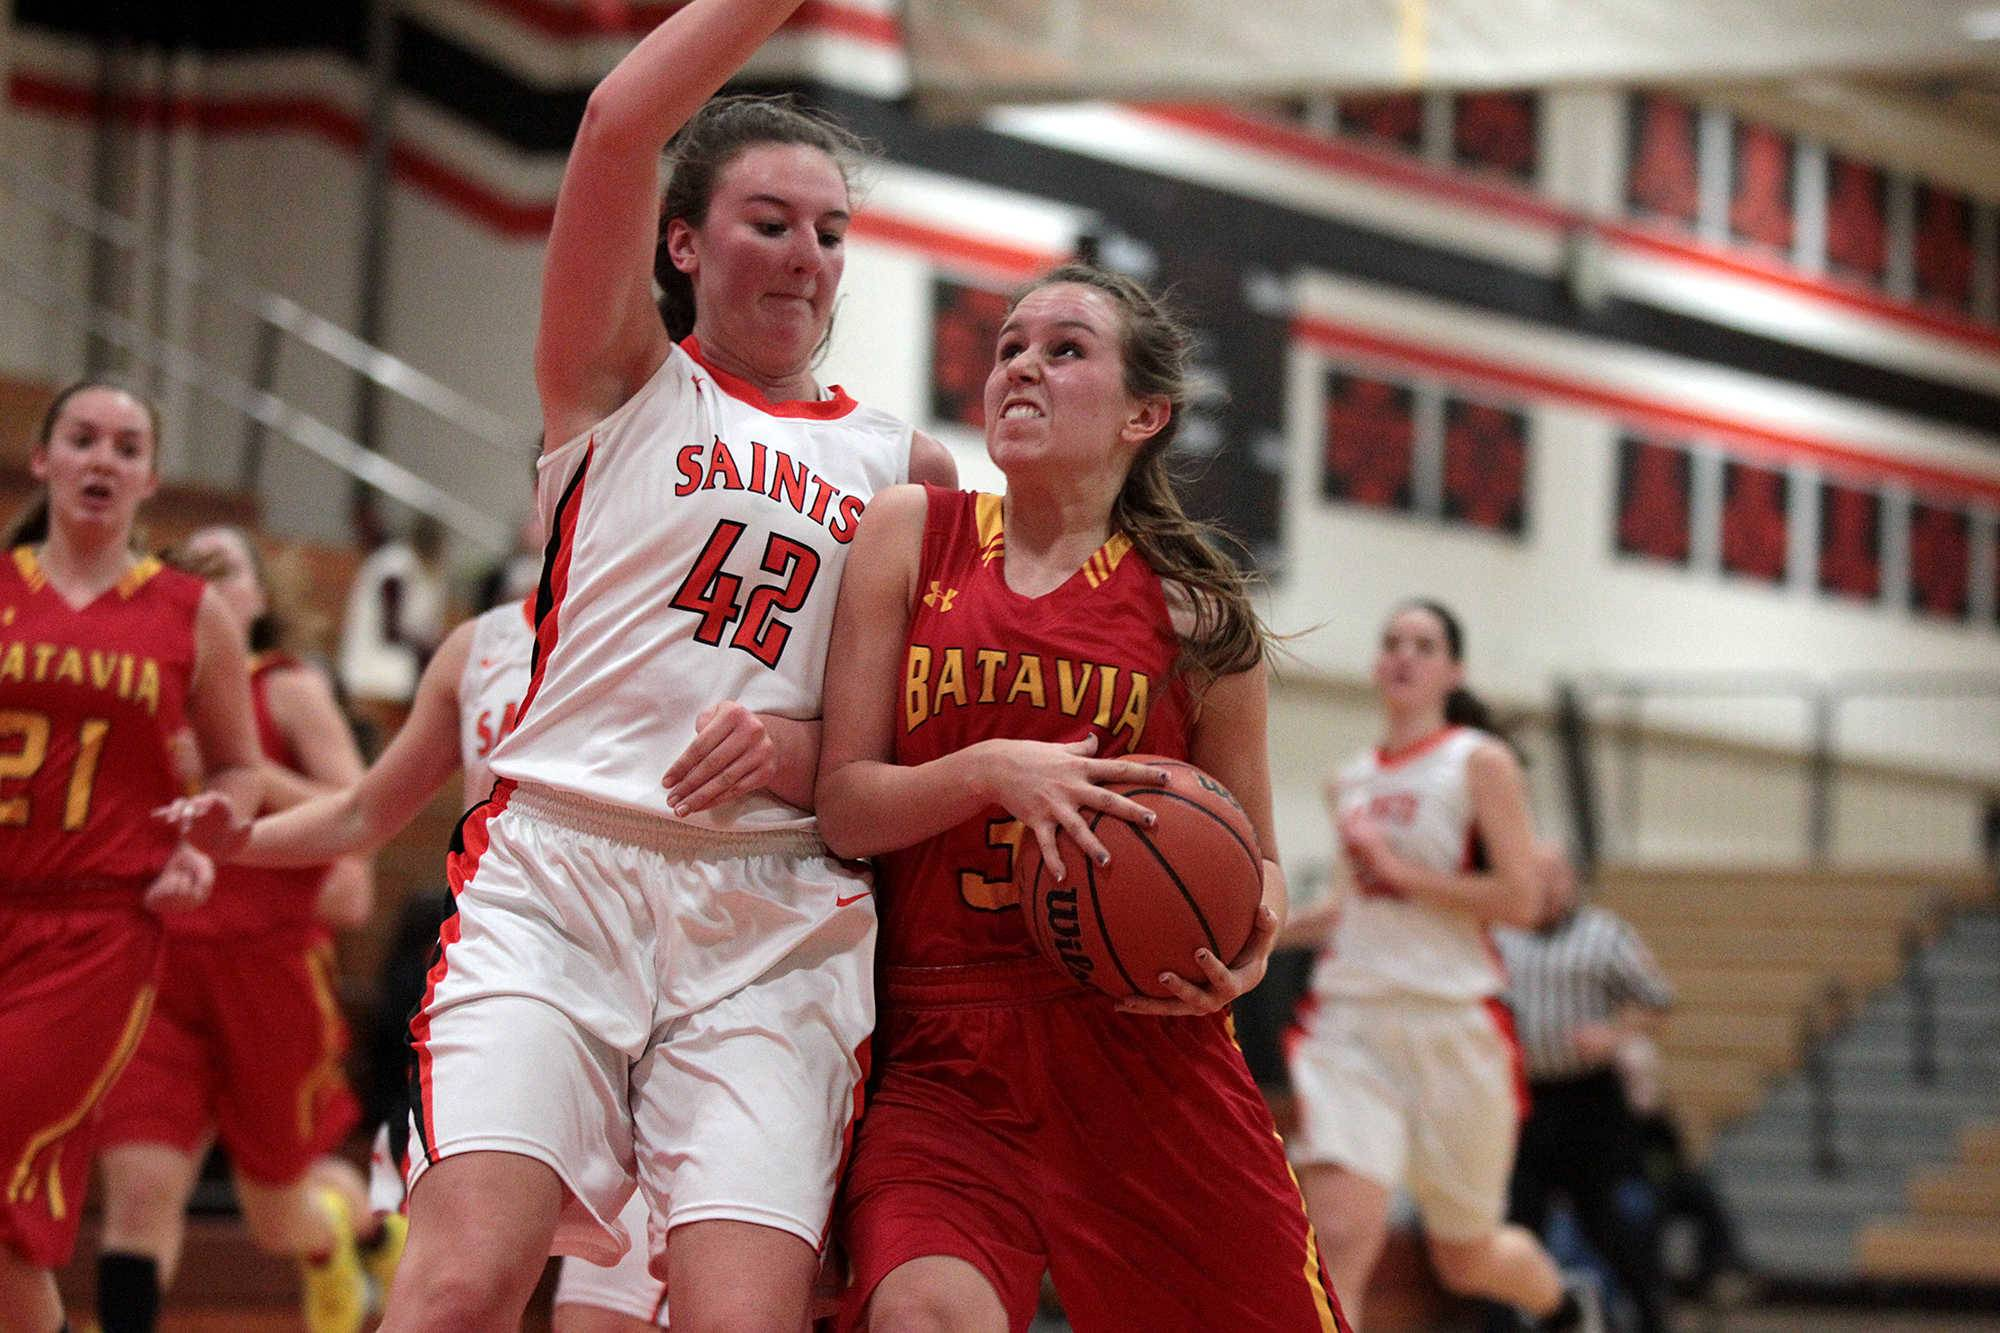 Batavia's Bethany Orman , right, battles St. Charles East's Kathleen Townsend on her way to the basket earlier this season.